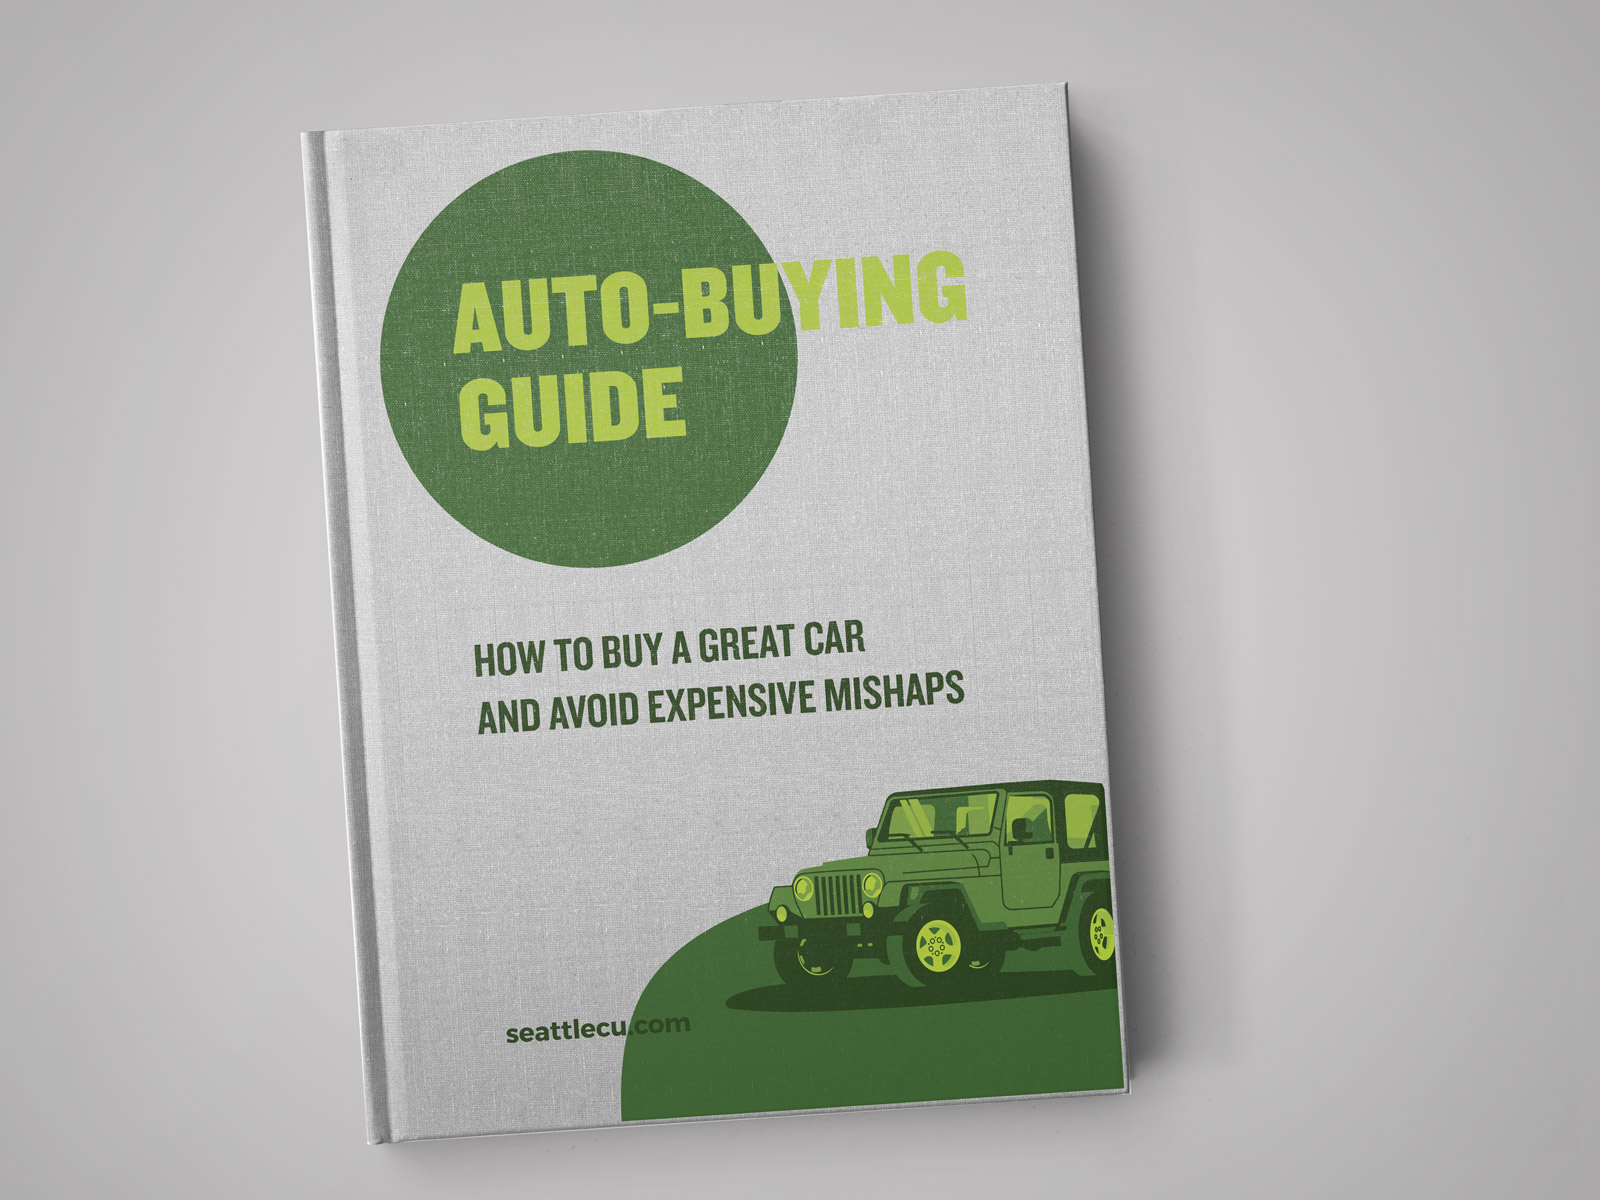 auto-buying guide